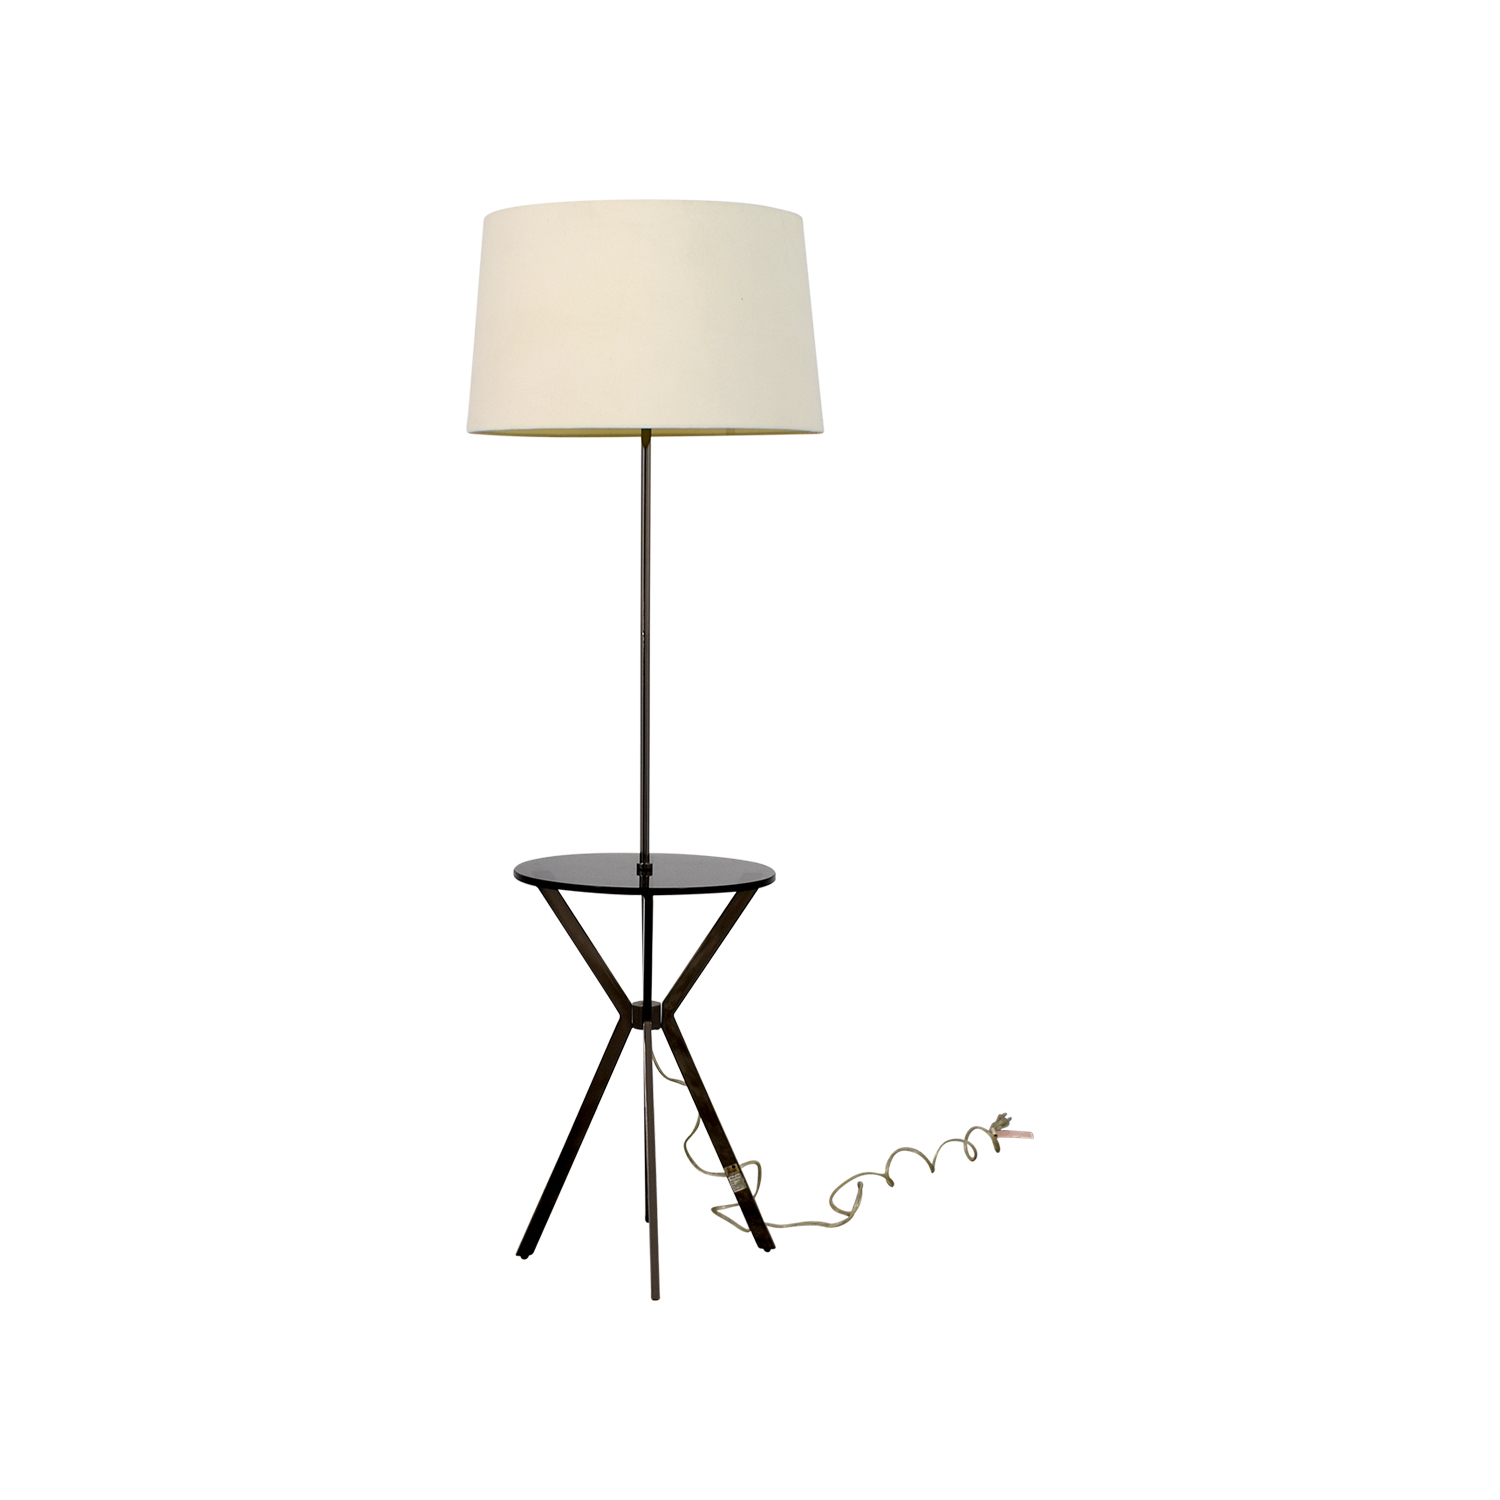 59 off west elm west elm floor lamp with table attached decor shop west elm west elm floor lamp with table attached online aloadofball Image collections